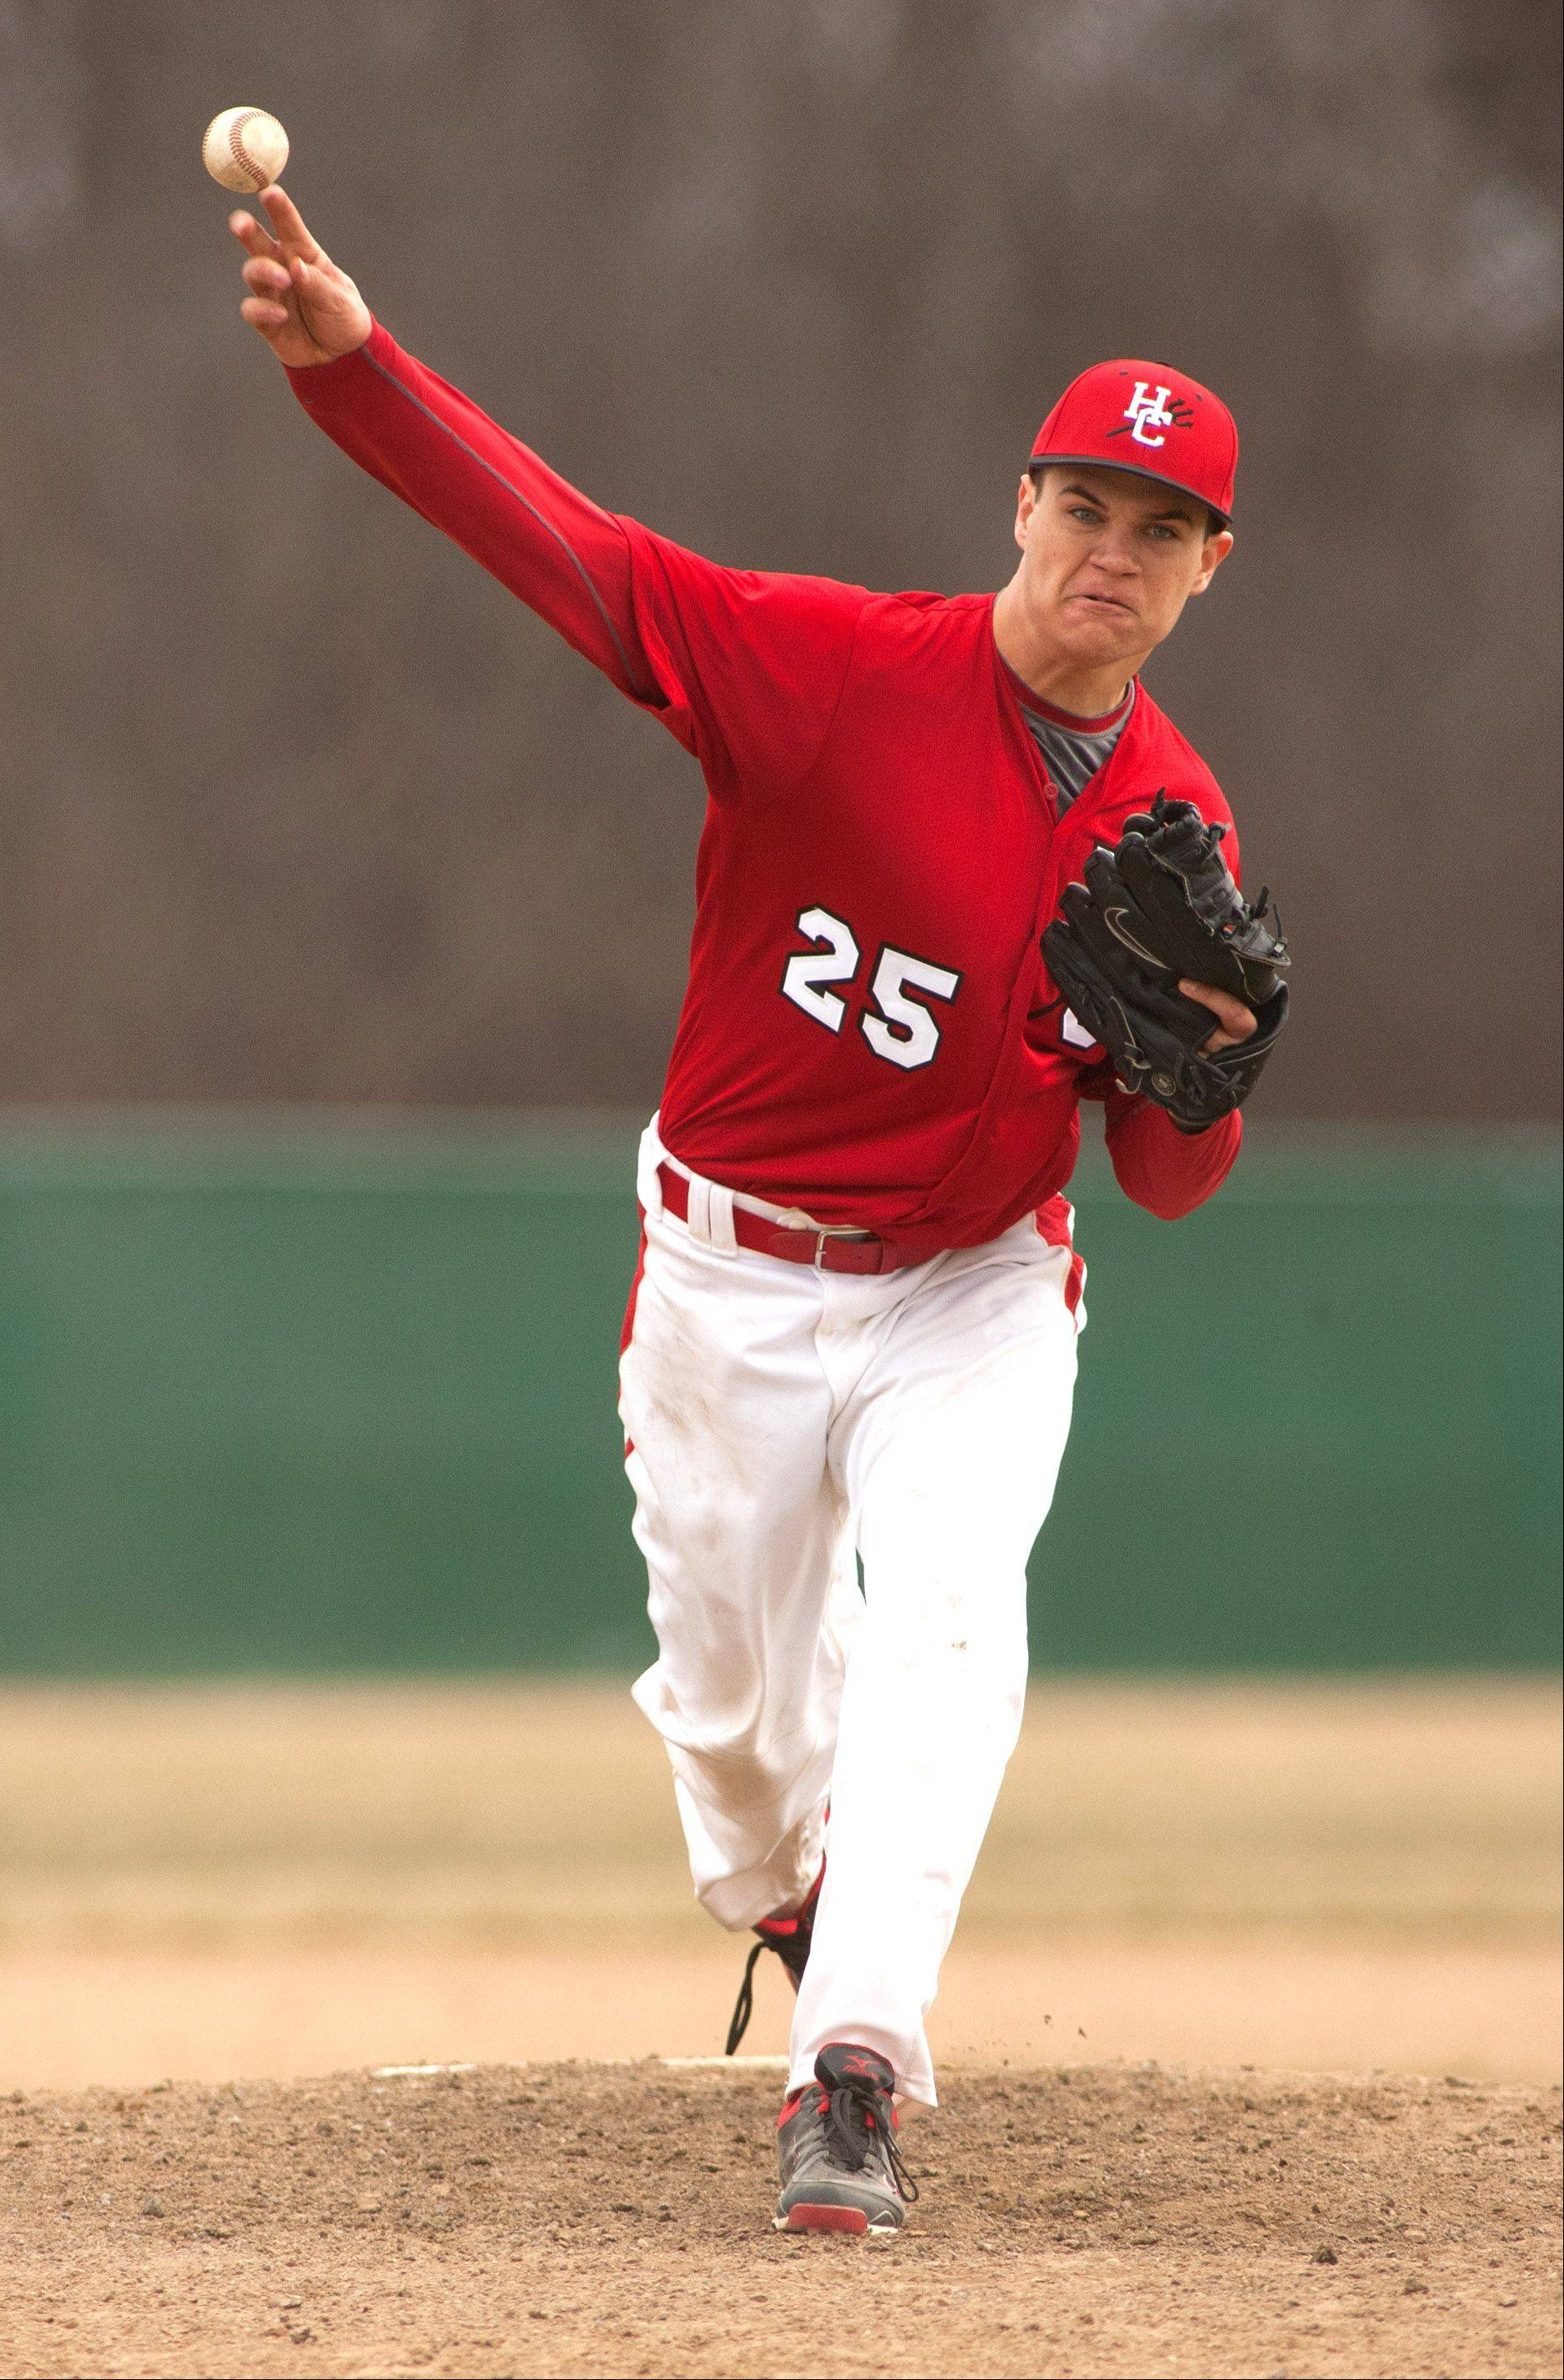 Hinsdale Central pitcher Bobby Skogsbergh delivers a pitch against Glenbard West.